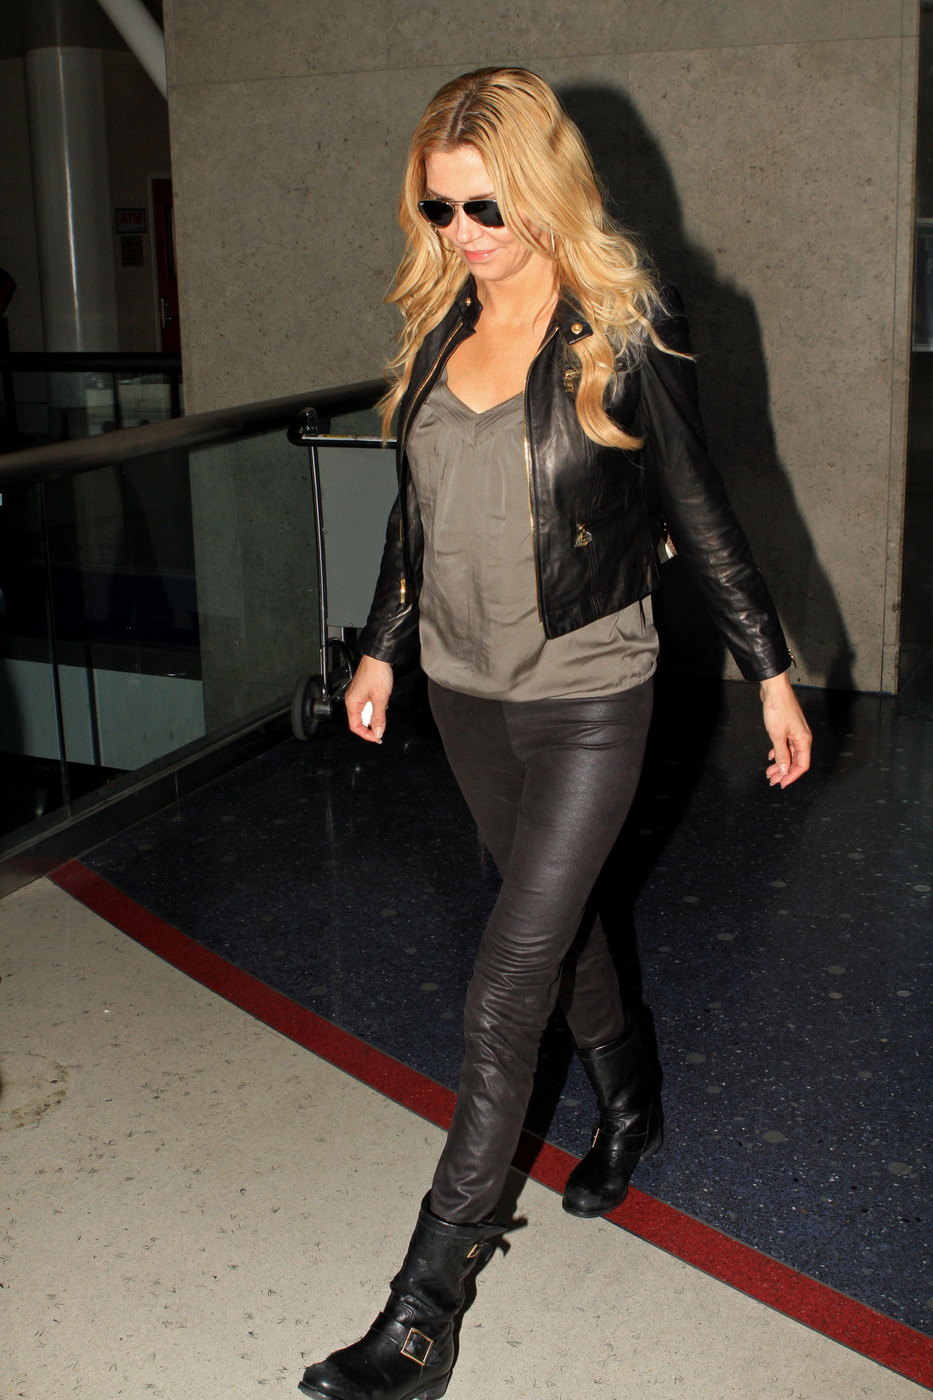 Brandi Glanville rocks leather pants and leather jacket as she makes